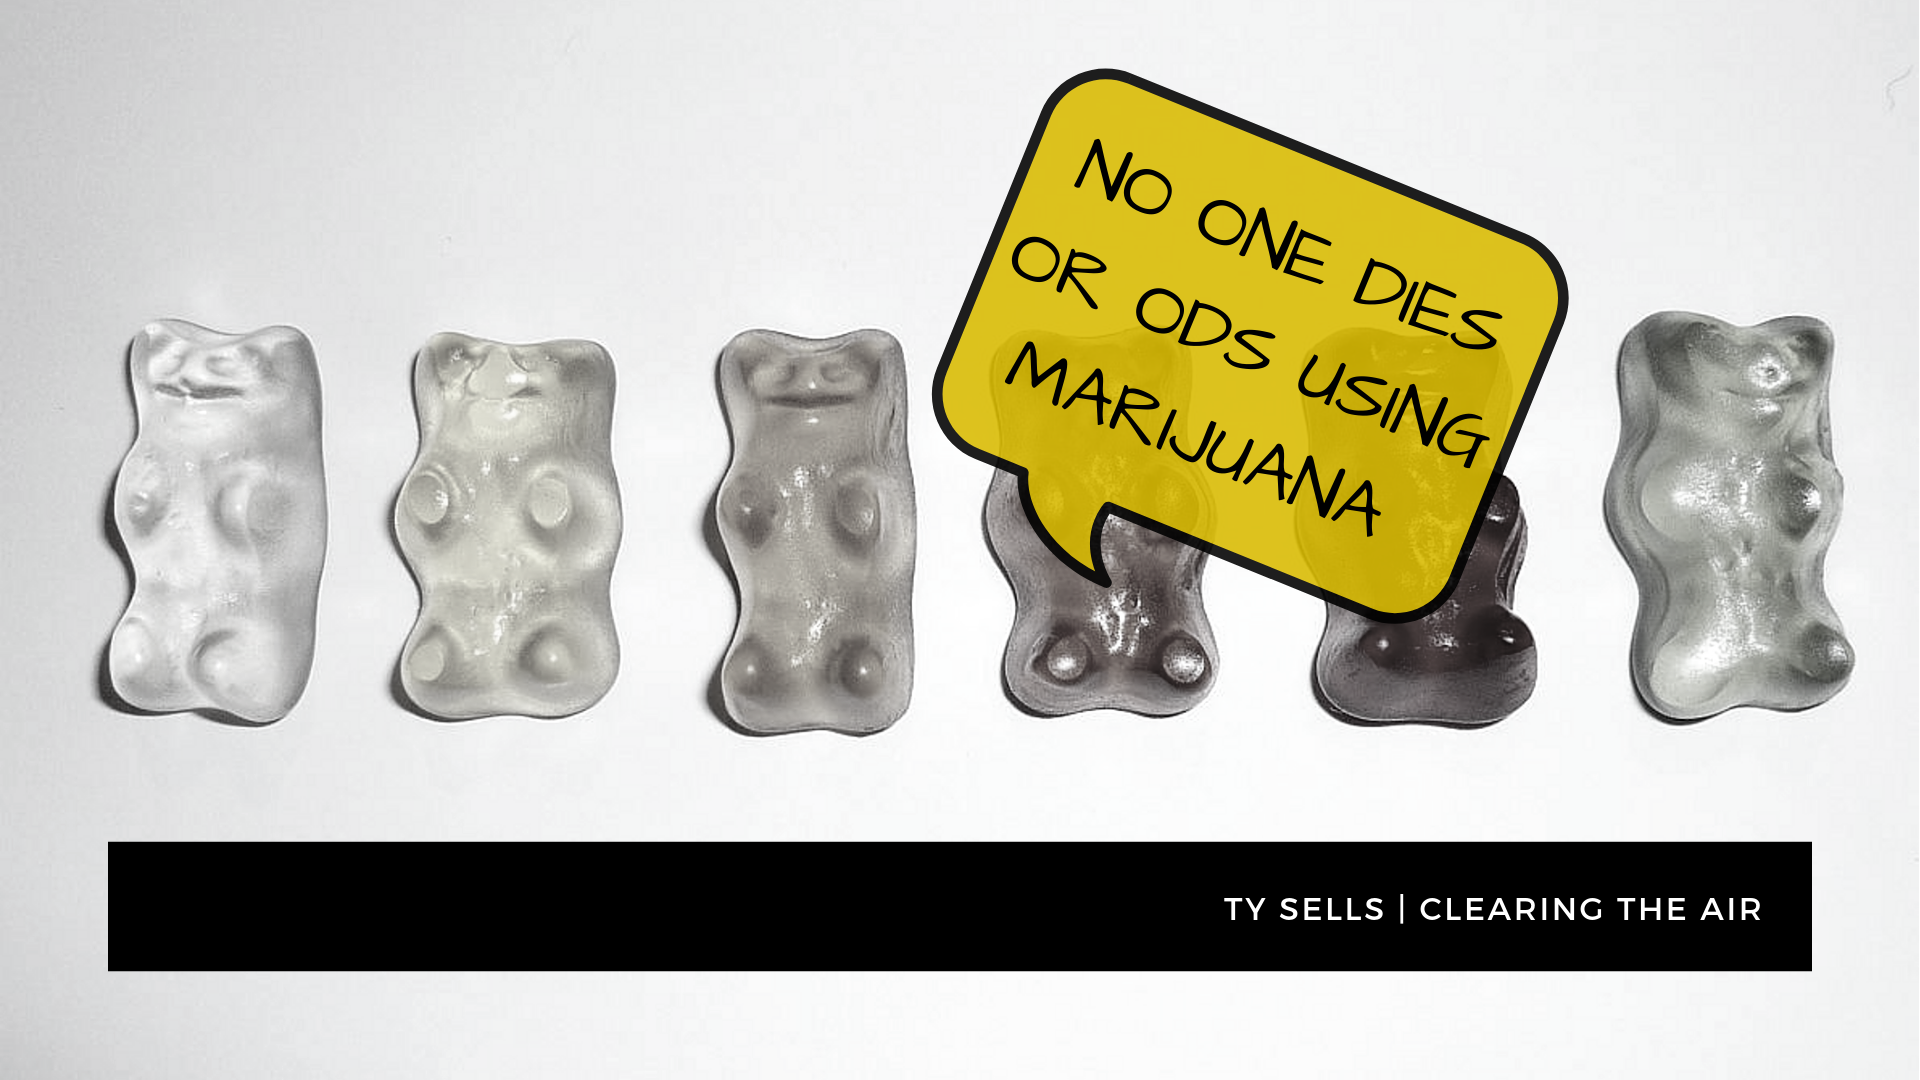 Myth #4 & 5: You Can't Die or Overdose from Marijuana